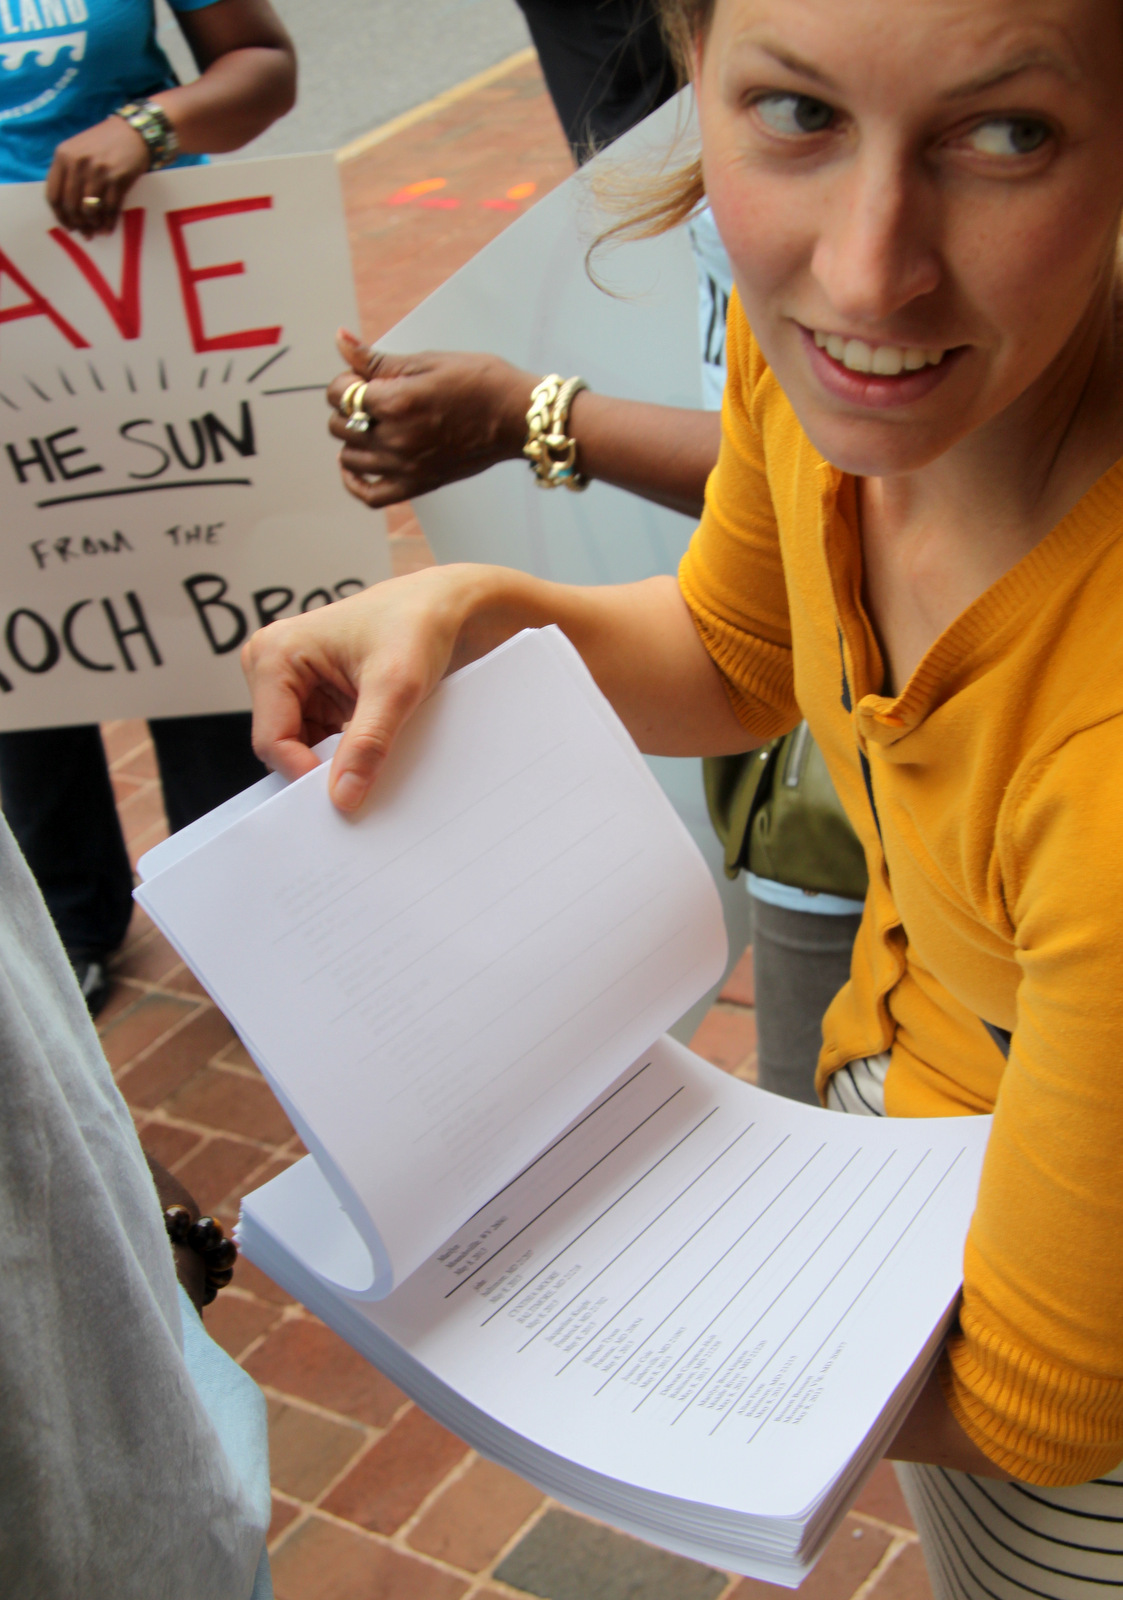 Molly Porter, of Good Jobs, Better Baltimore, holding petition against the Kochs signed by 6,5000 people. (Photo by Fern Shen)